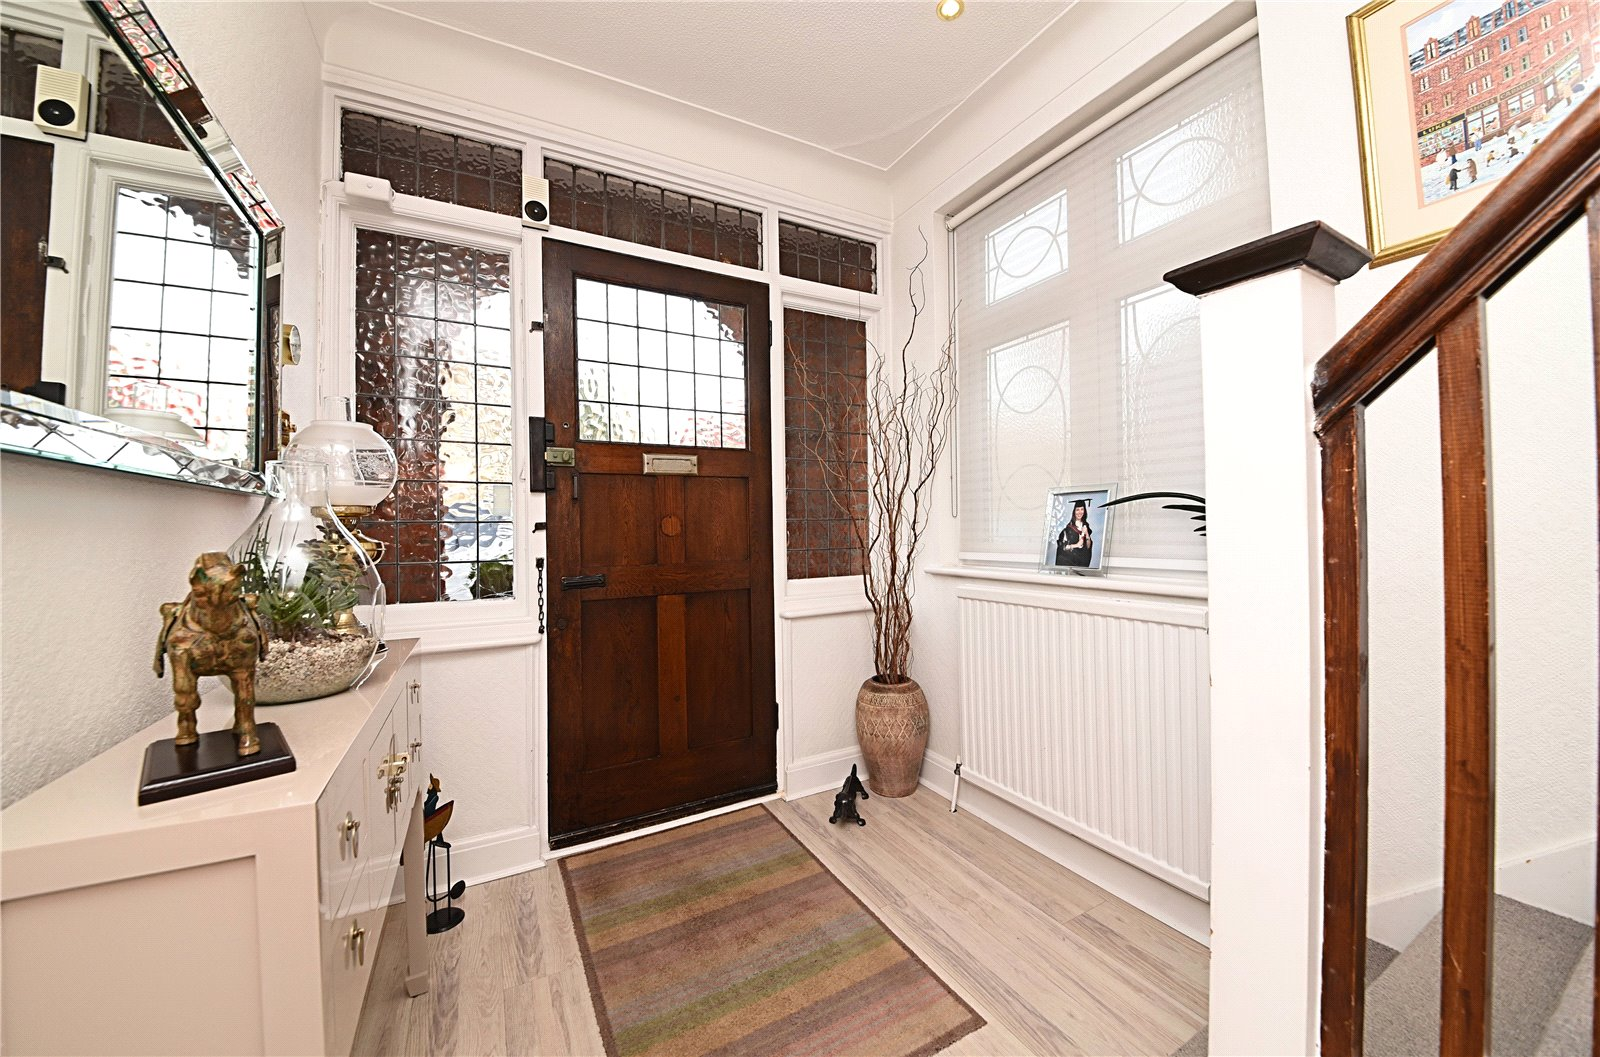 4 bed house for sale in Hendon, NW4 1LJ  - Property Image 2